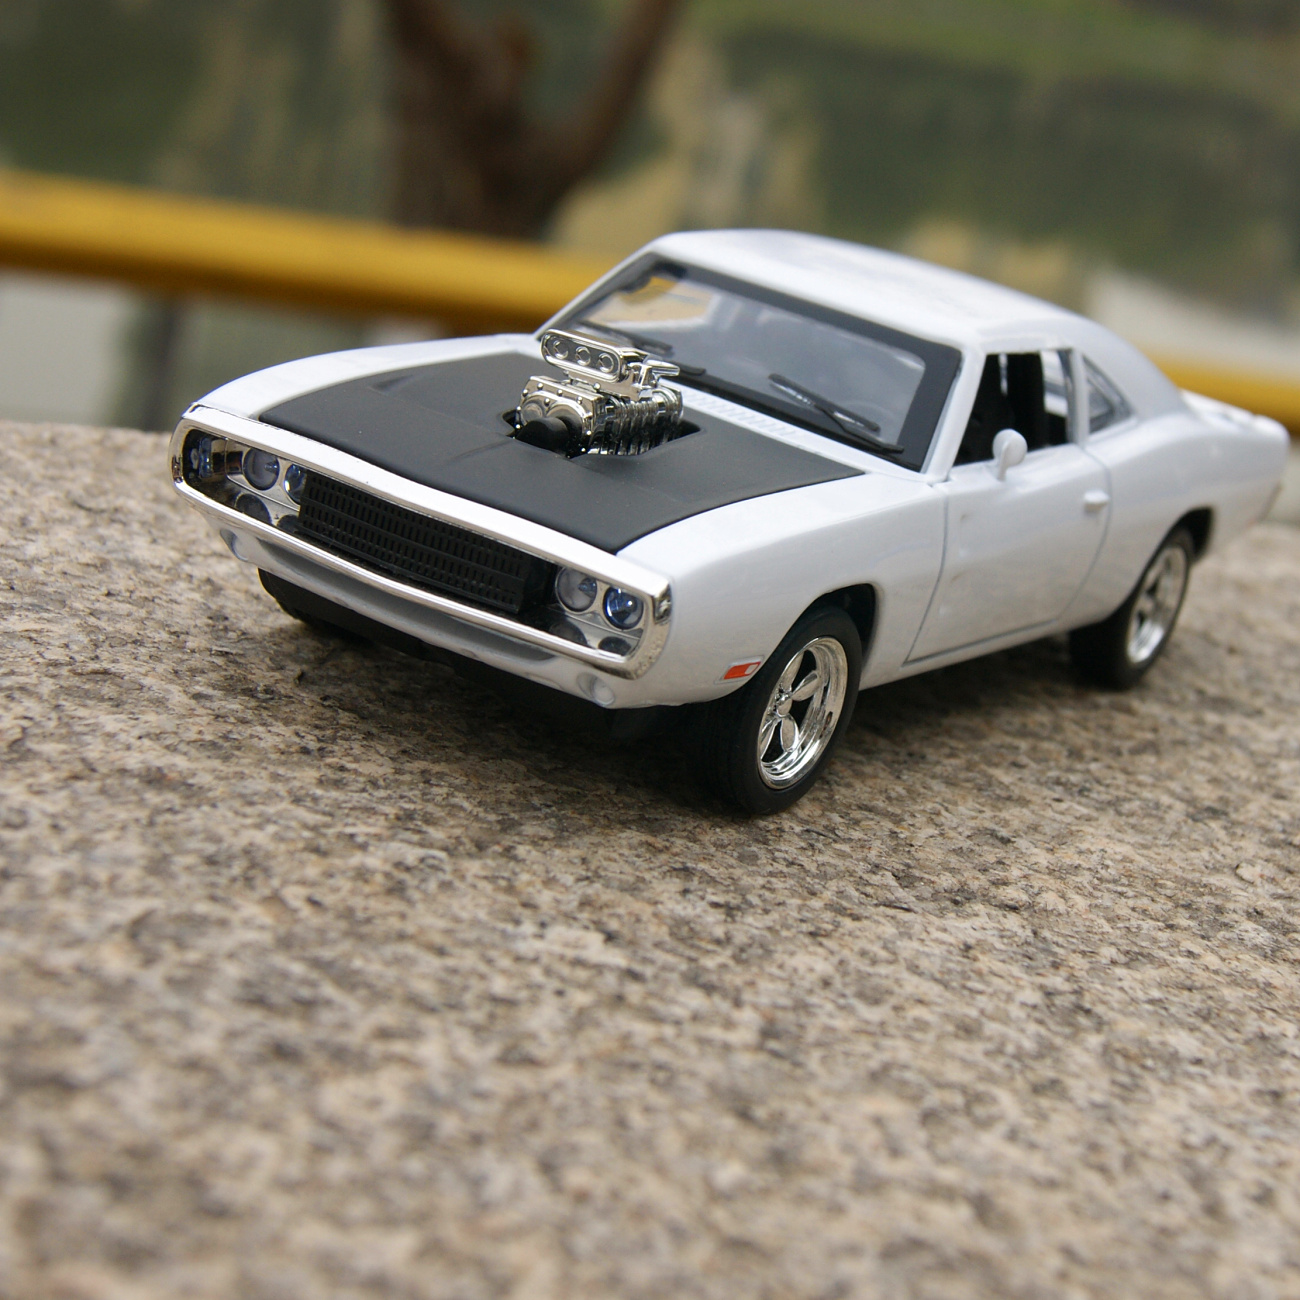 1970 DODGE CHARGER 1:32 MUSCLE Car Model Alloy Diecast THE